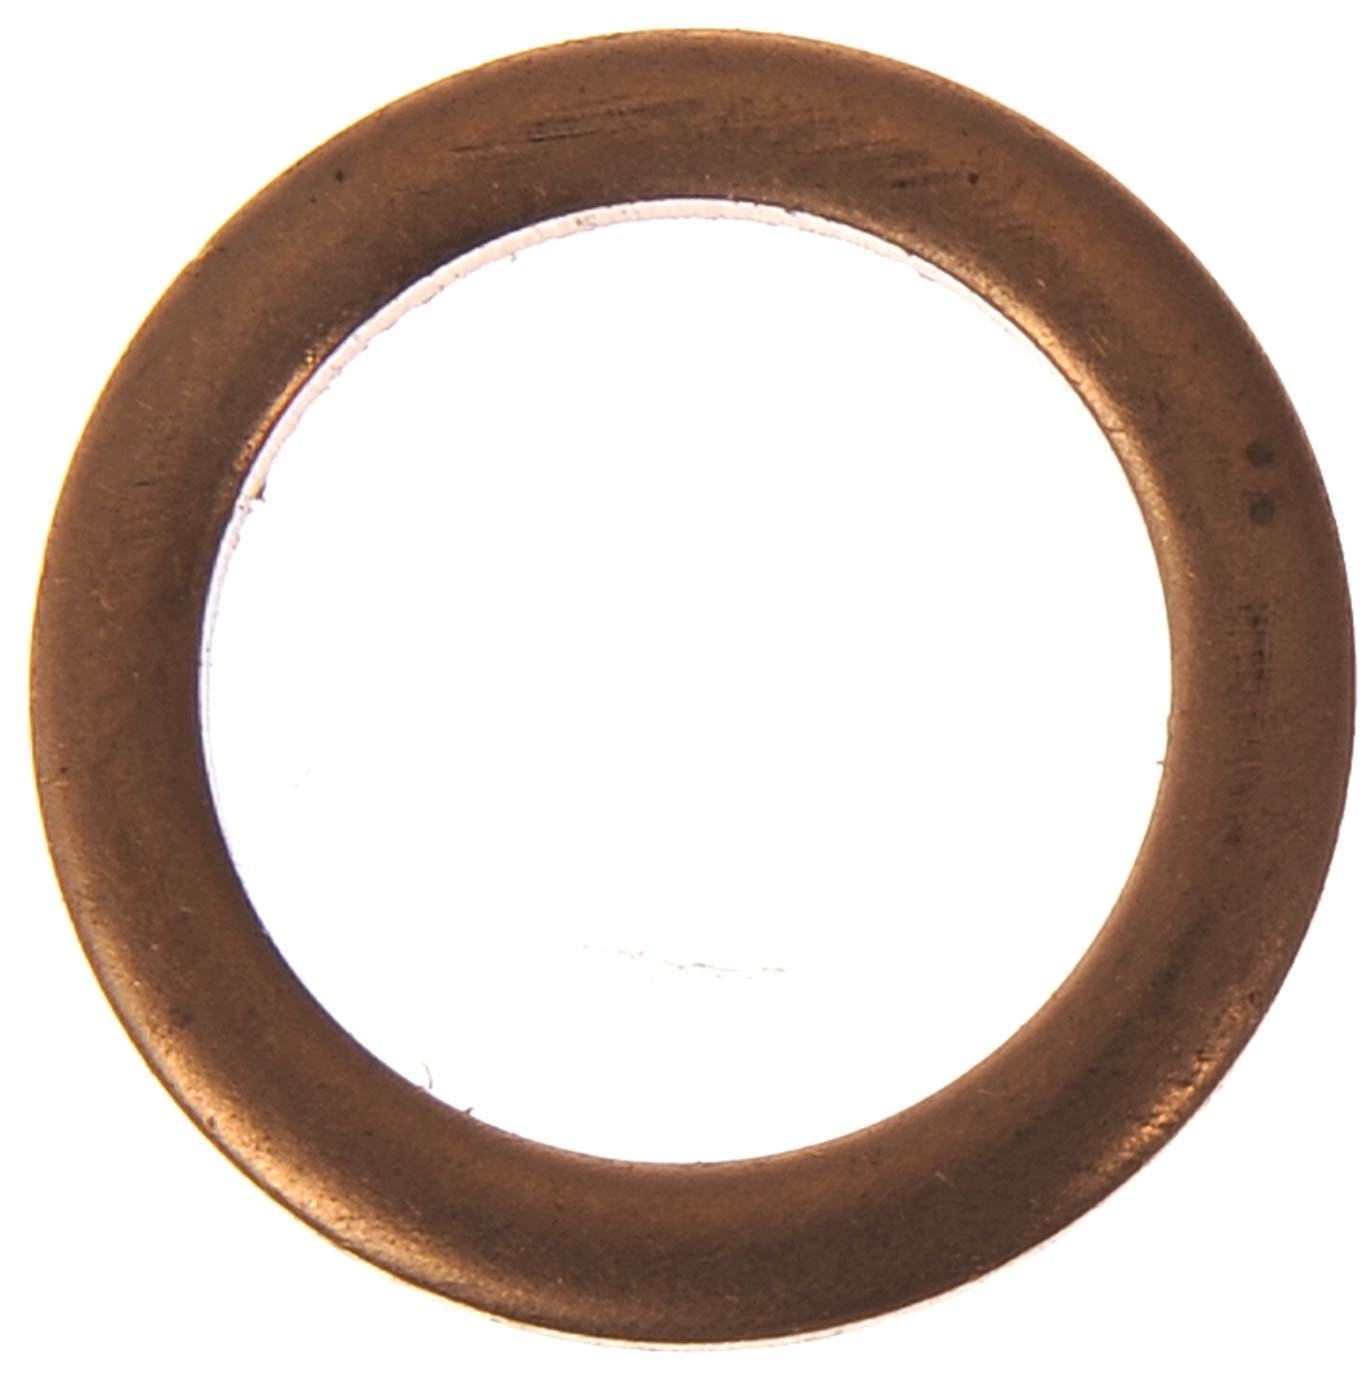 DORMAN - AUTOGRADE - Engine Oil Drain Plug Gasket - DOC 095-010.1